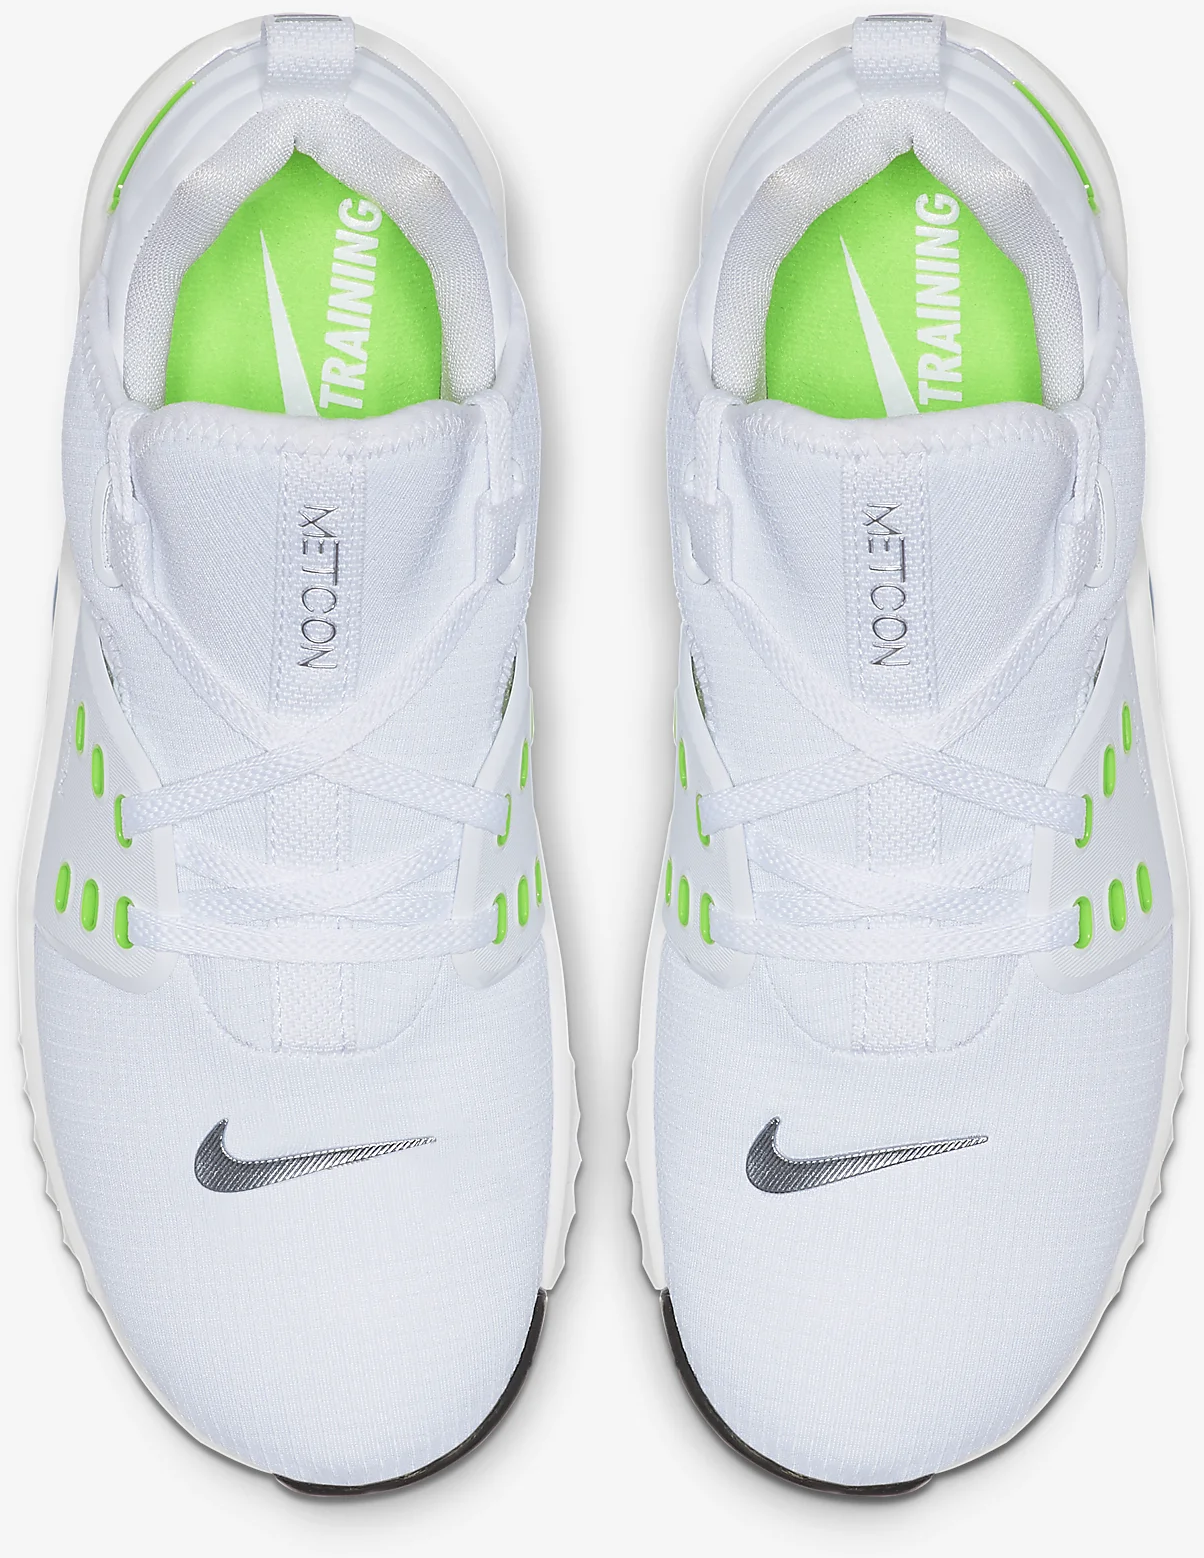 nike barefoot running shoes review